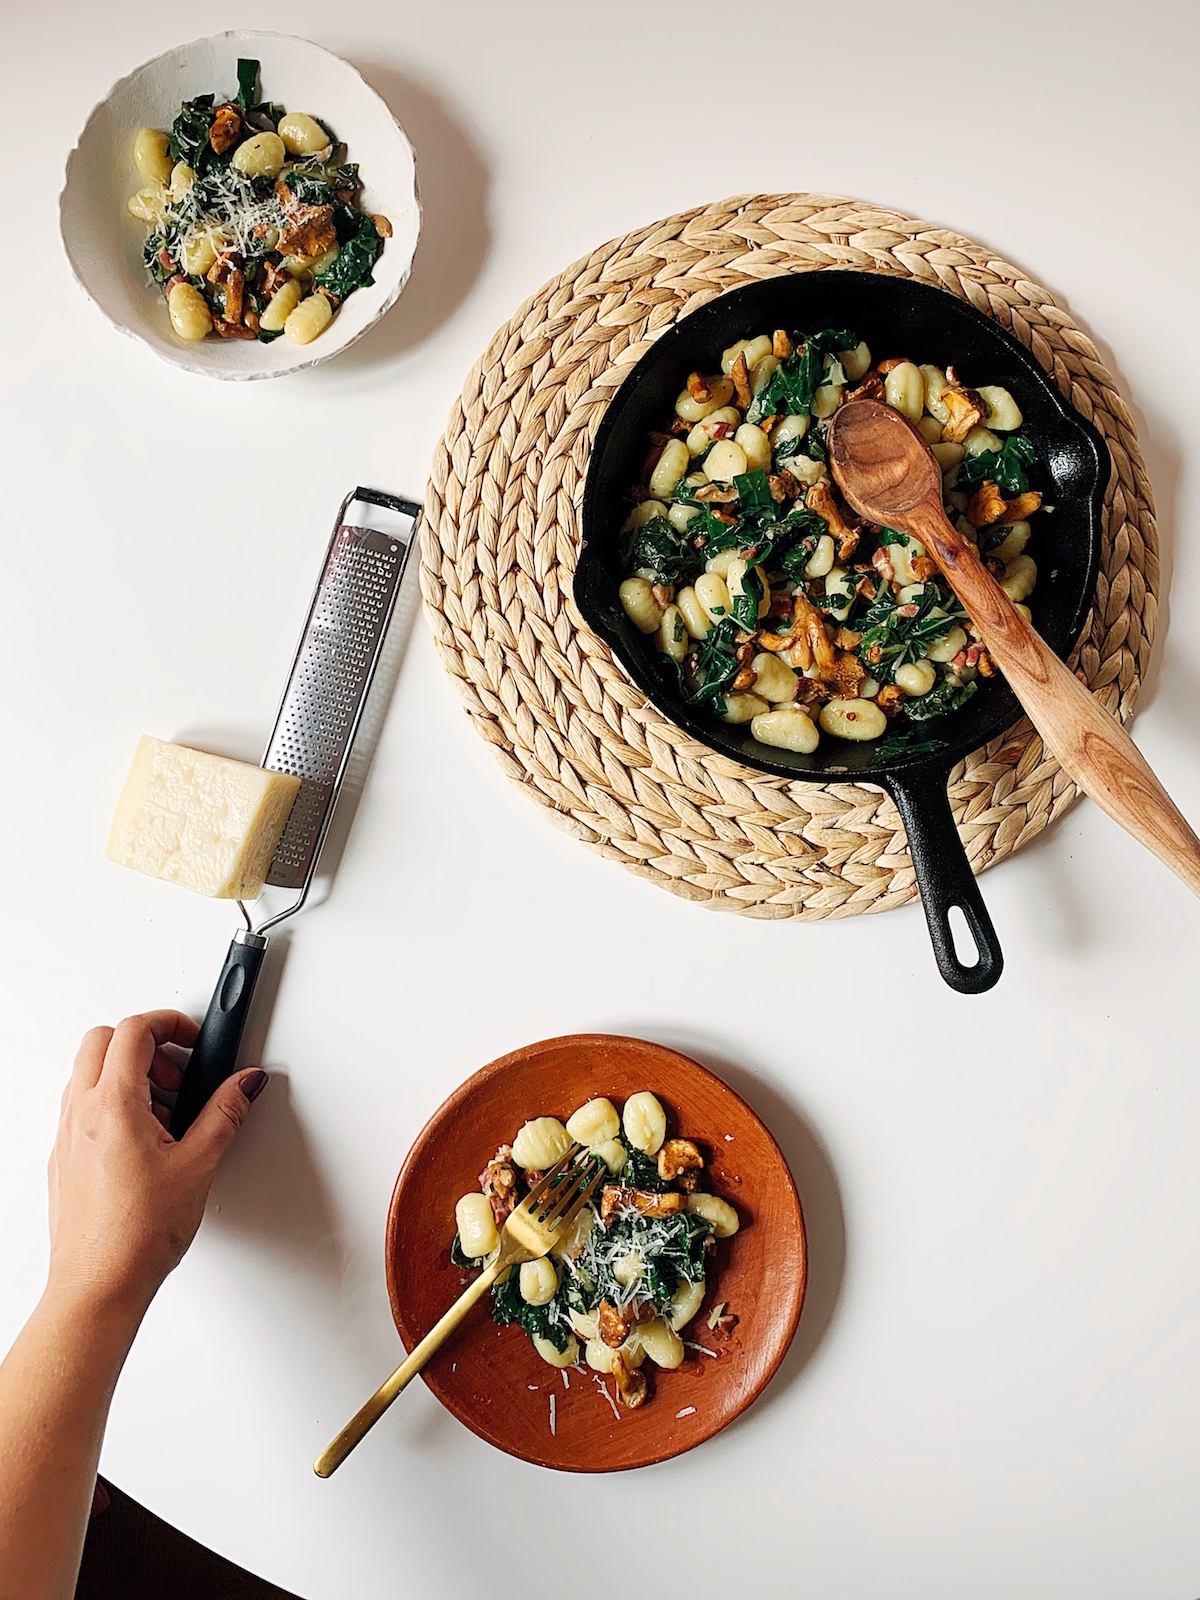 gnocchi with chard and chanterelle mushrooms